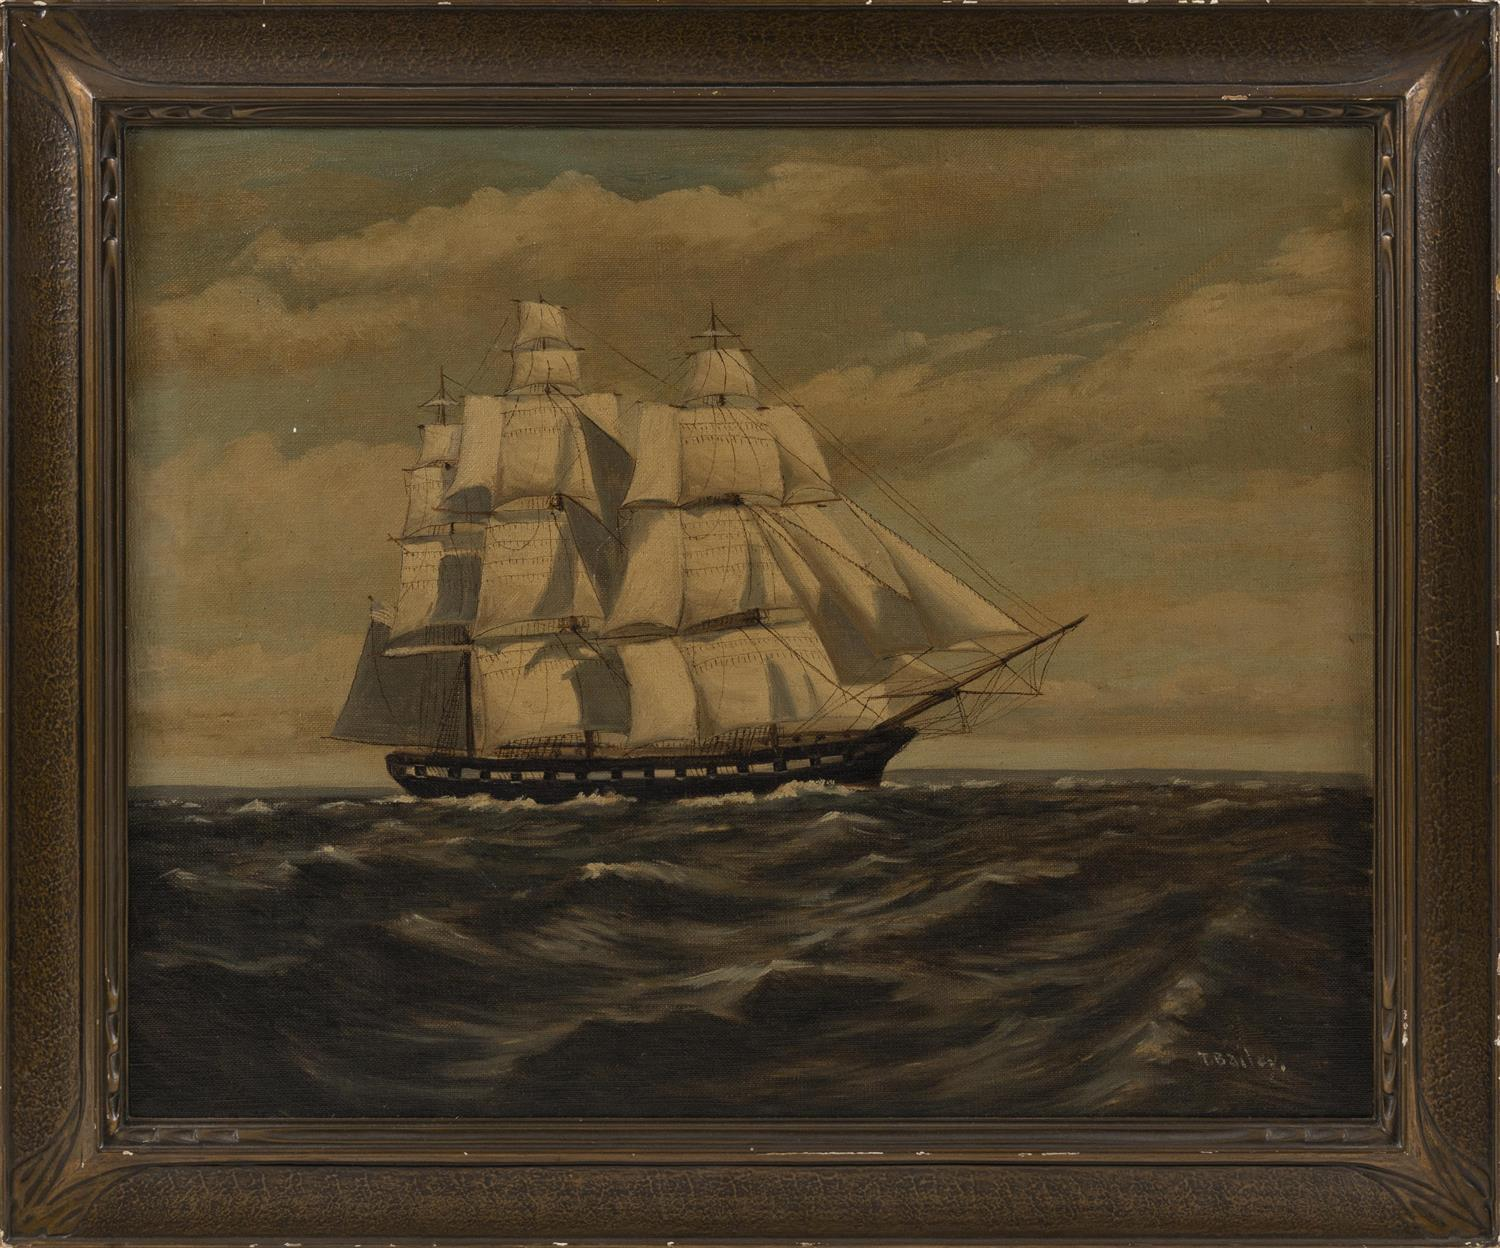 "T. BAILEY, Massachusetts, 19th/20th Century, Three-masted ship at sea., Oil on canvas, 16"" x 20"". Framed 19.5"" x 23.5""."